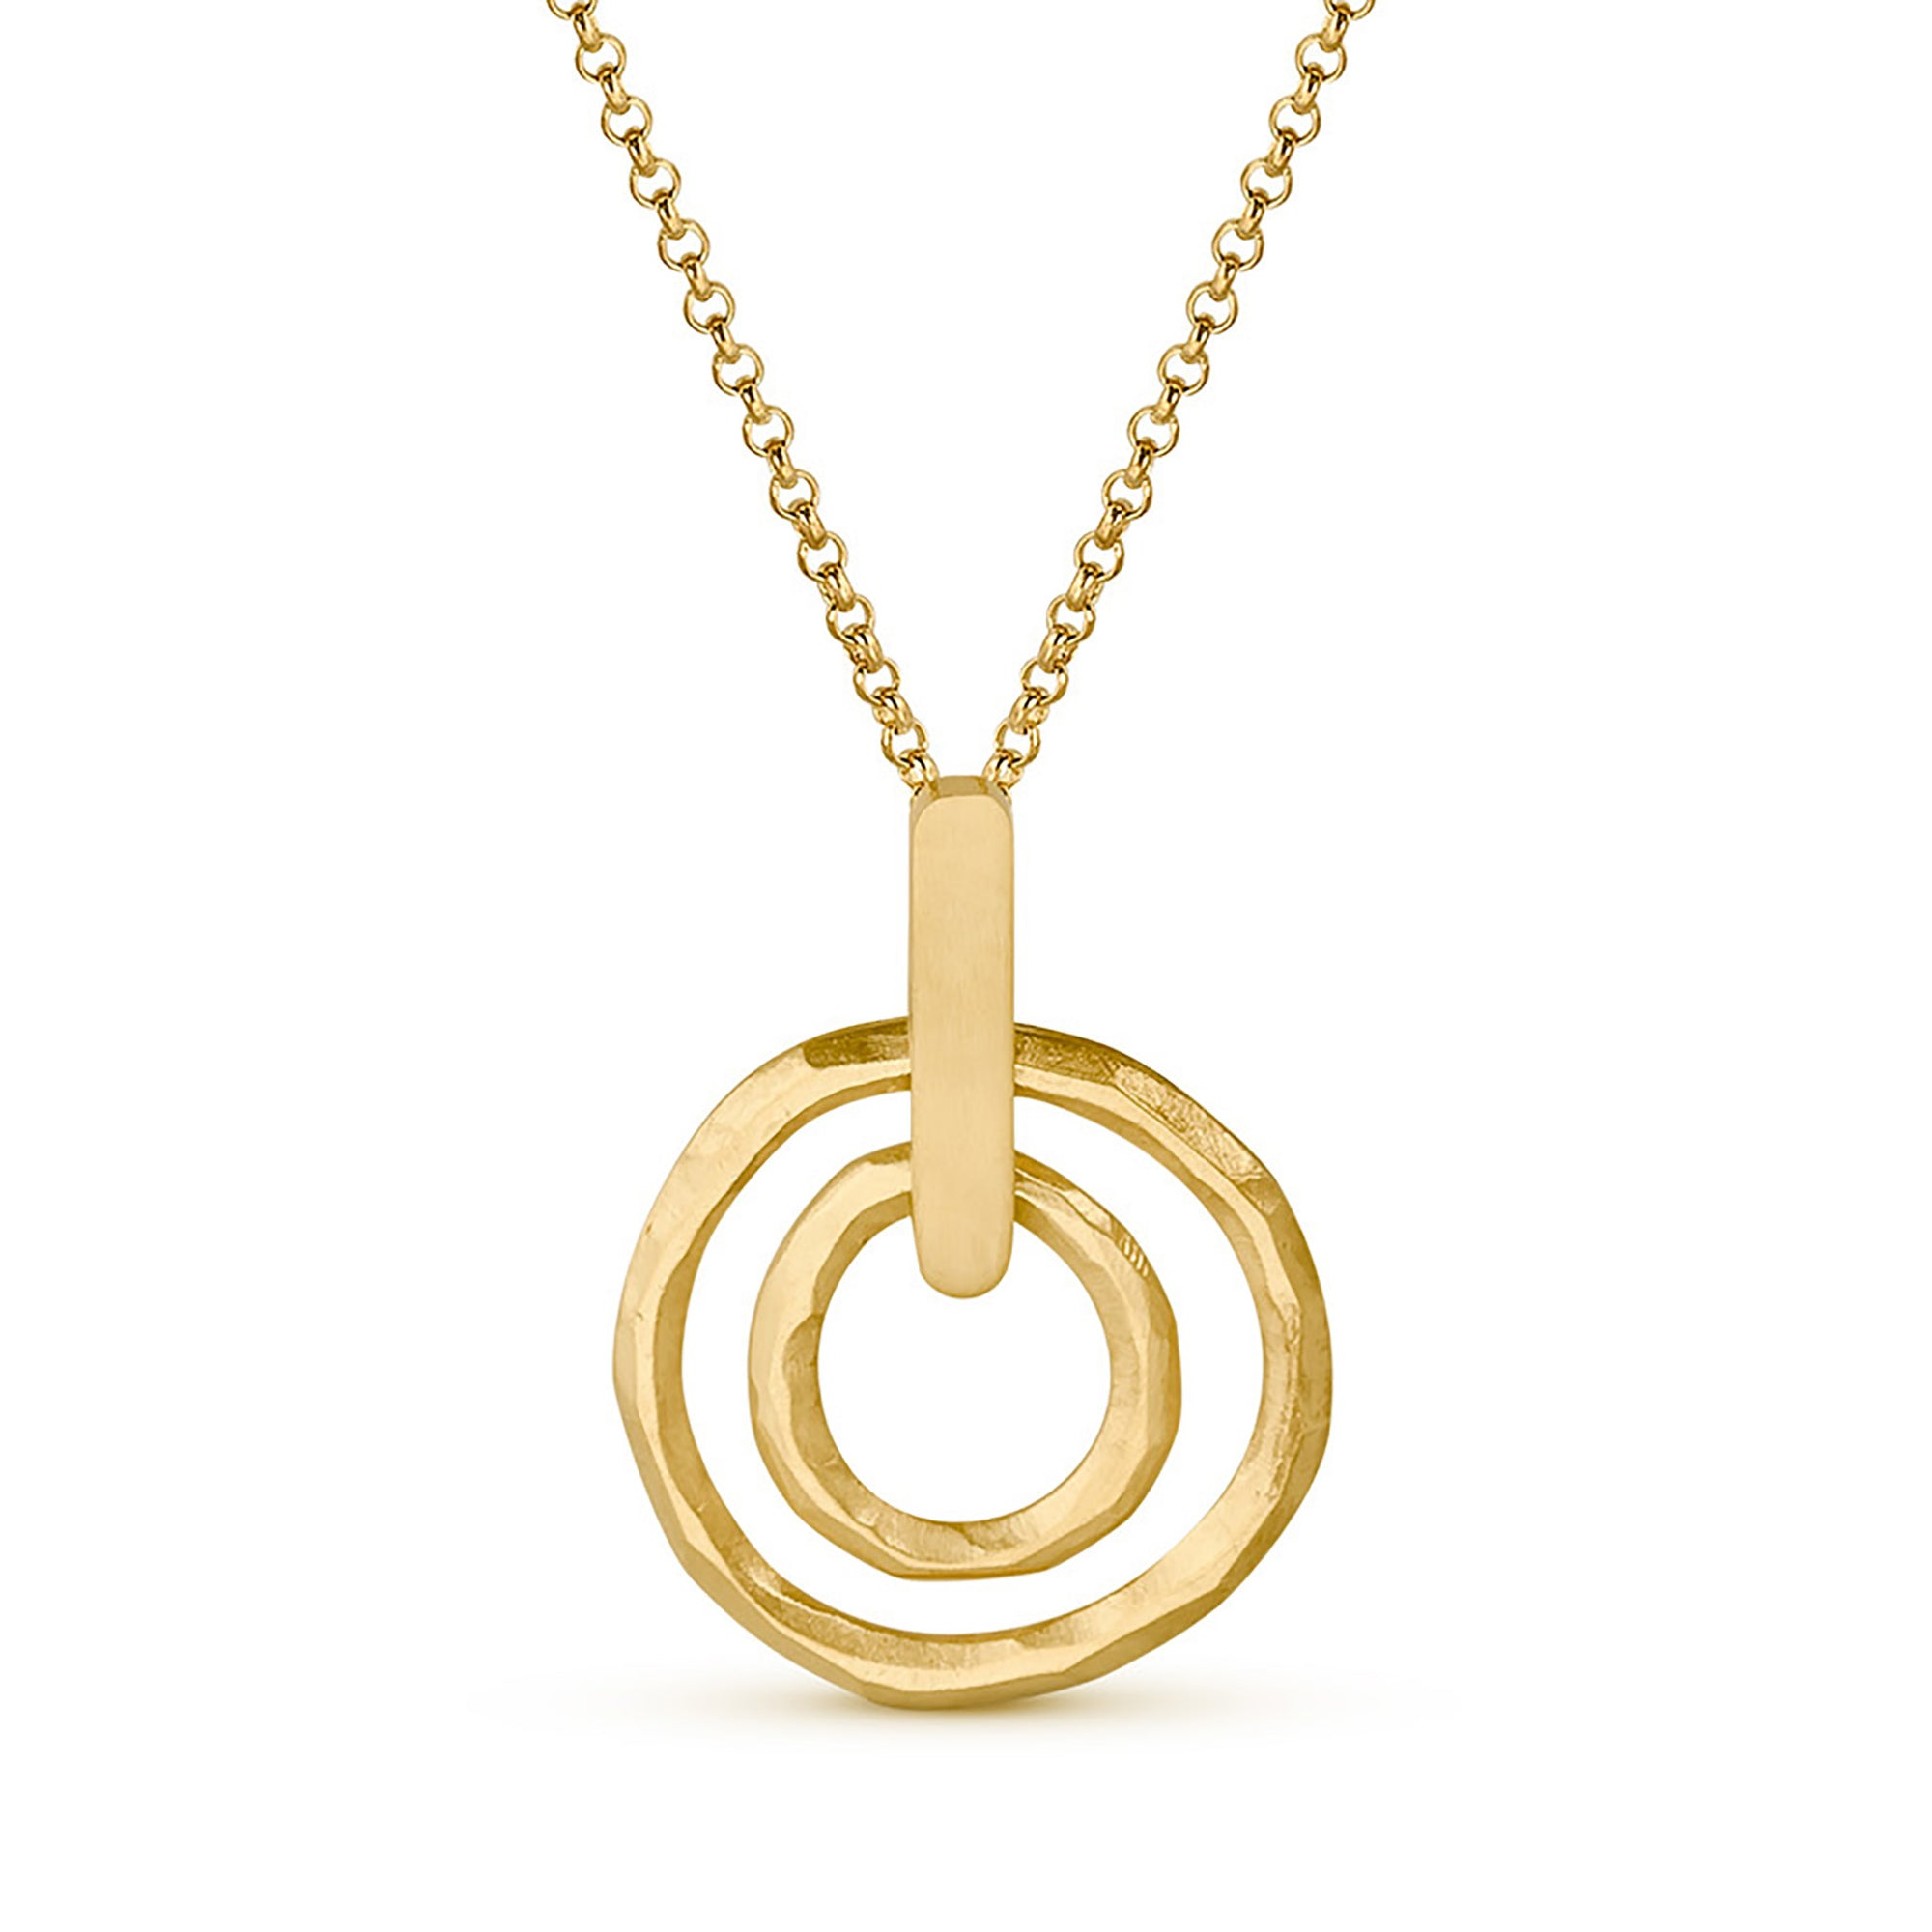 Hammered Double Circle Pendant Necklace